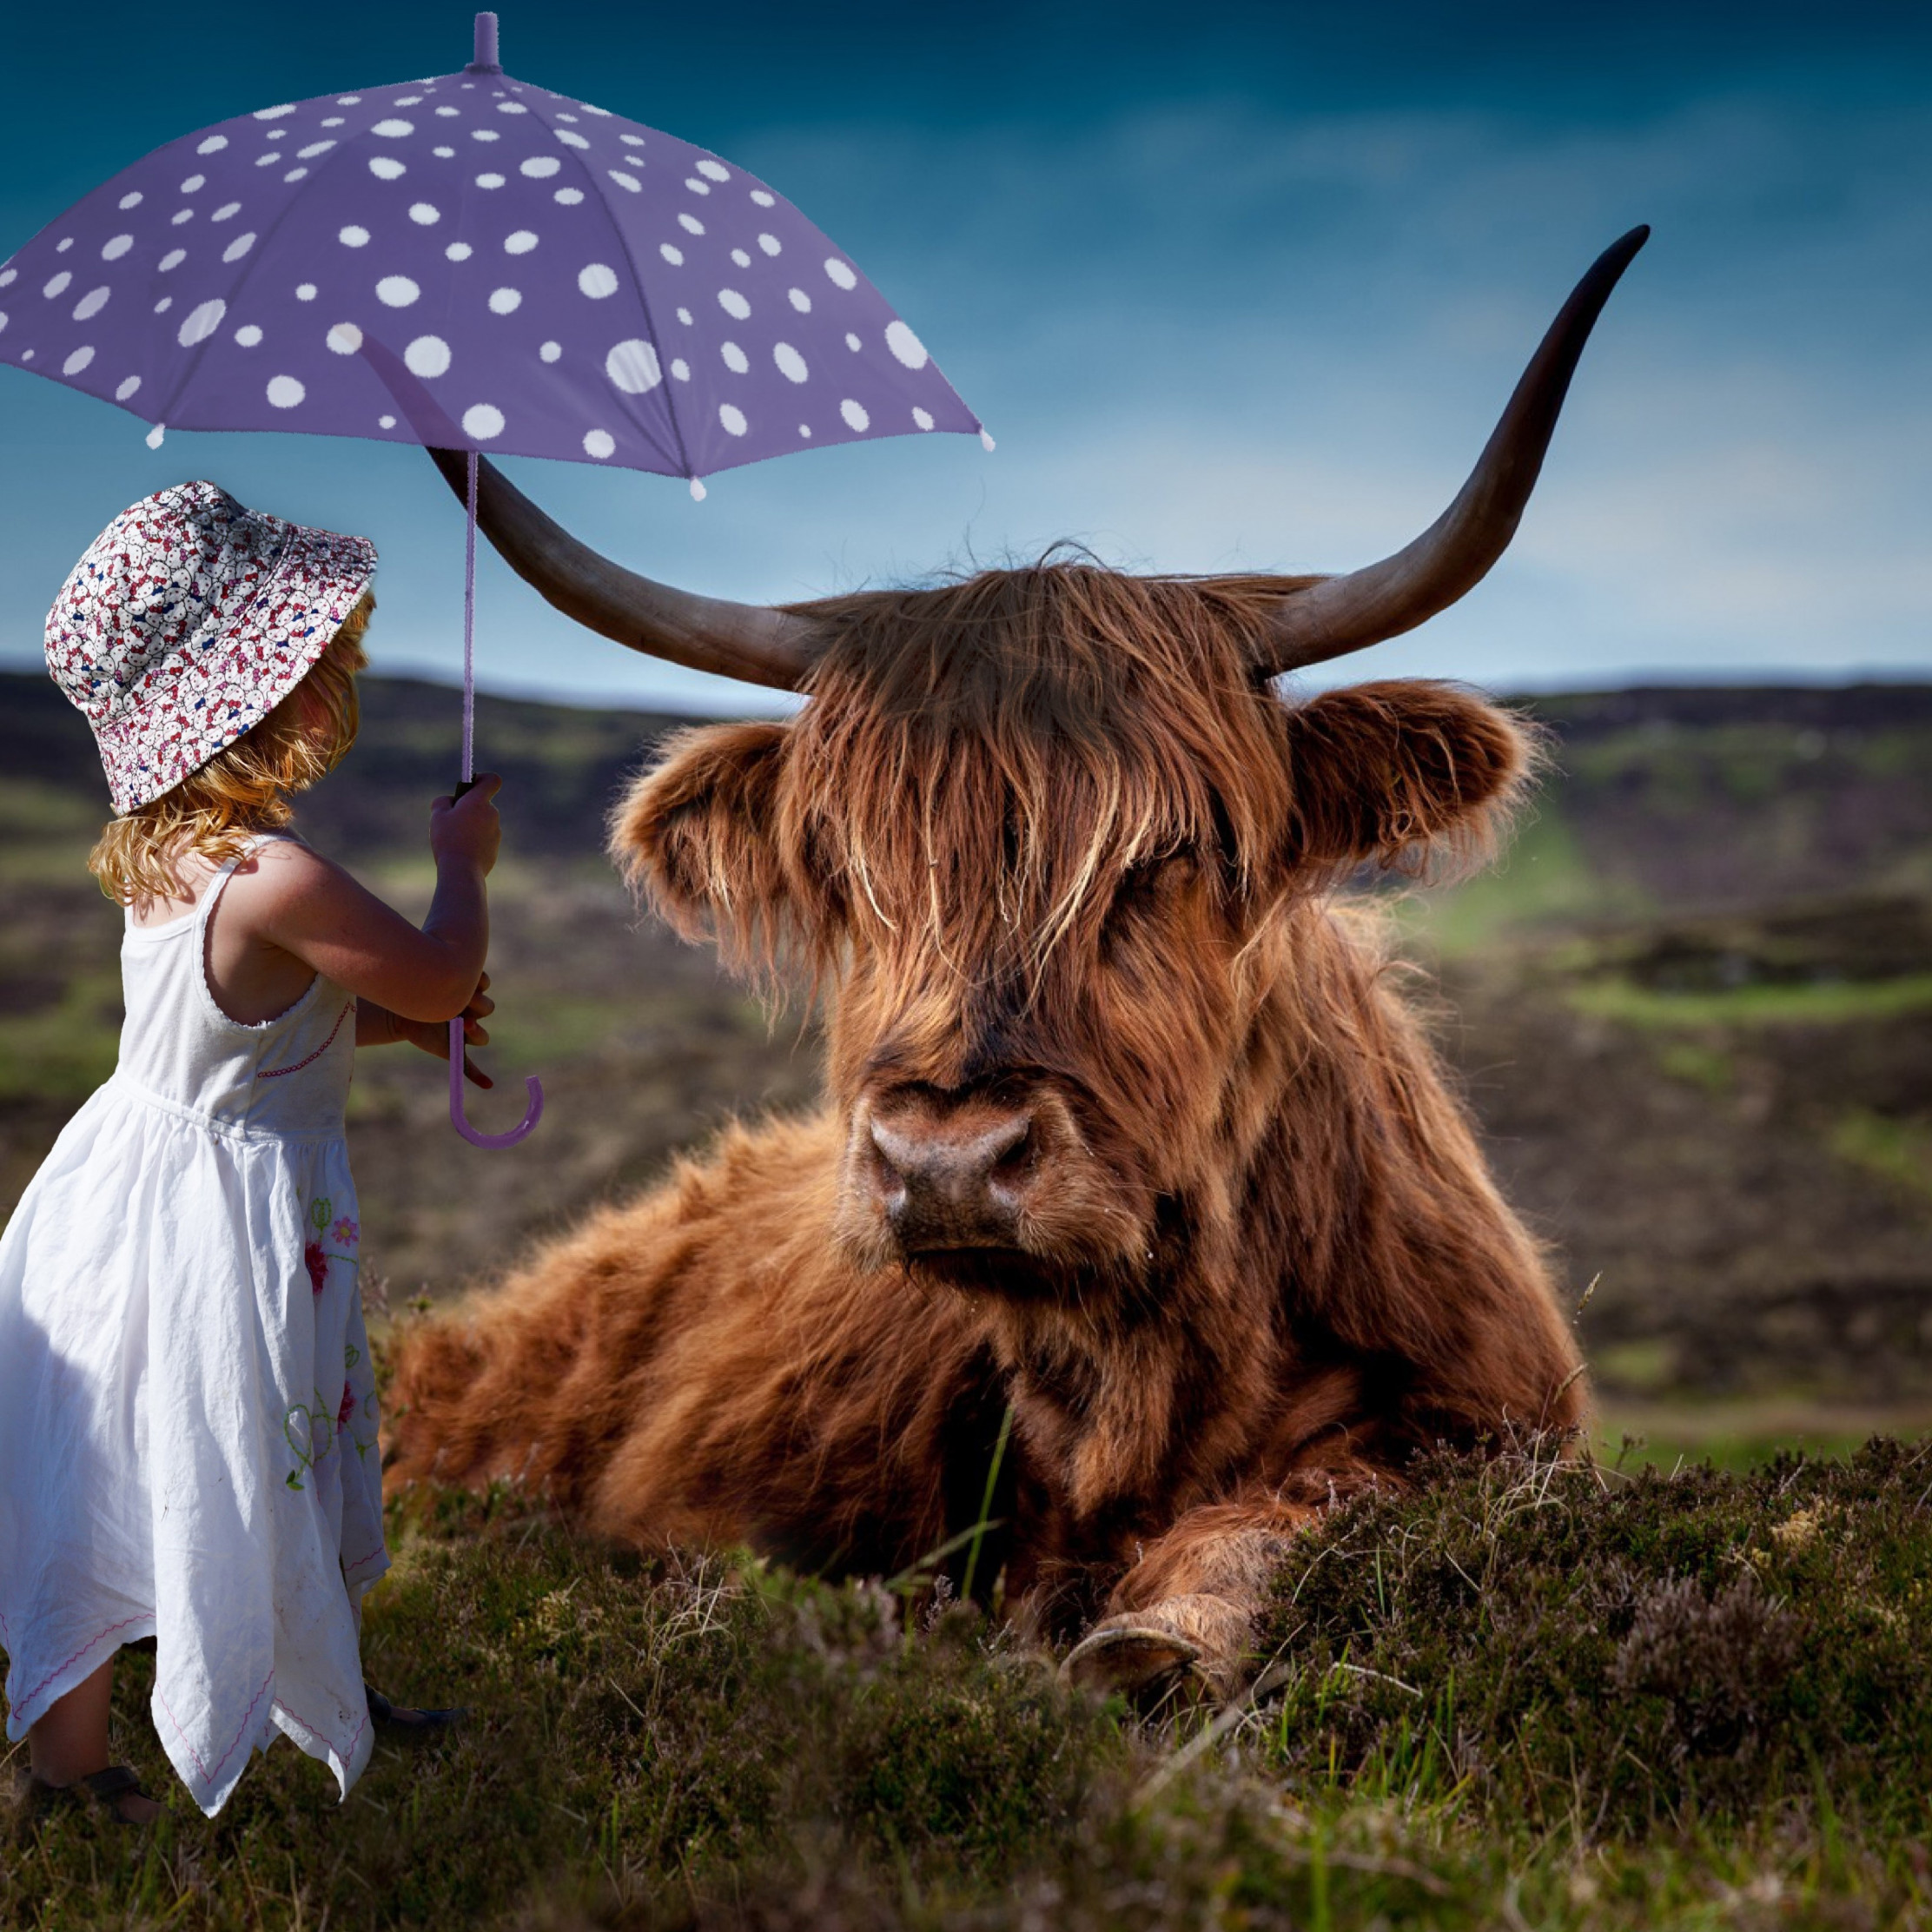 Child with the umbrella and the funny cow wallpaper 2224x2224